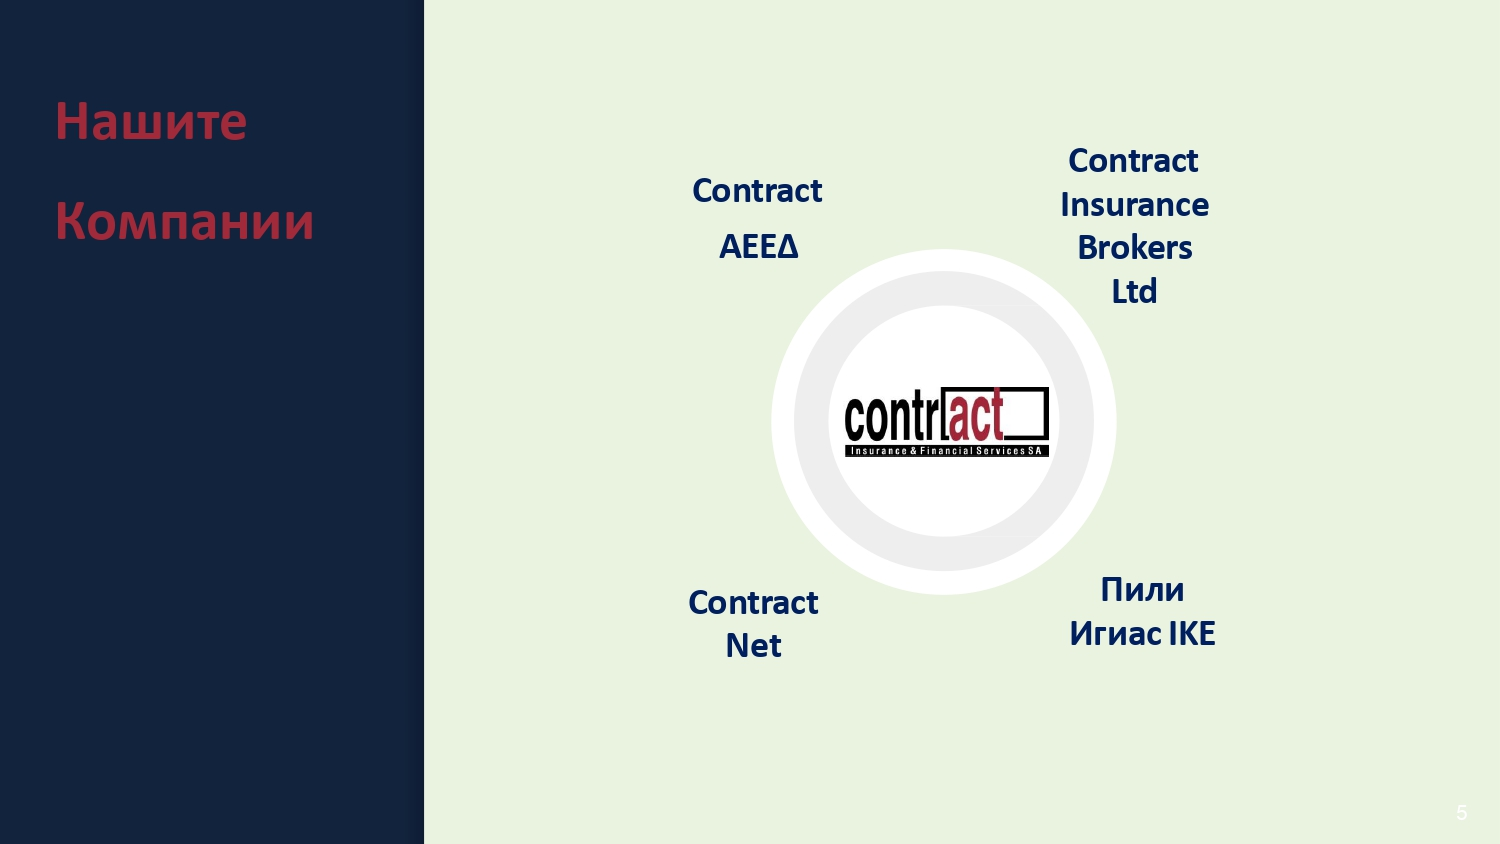 Contract Group_2020 presentation_page-0005